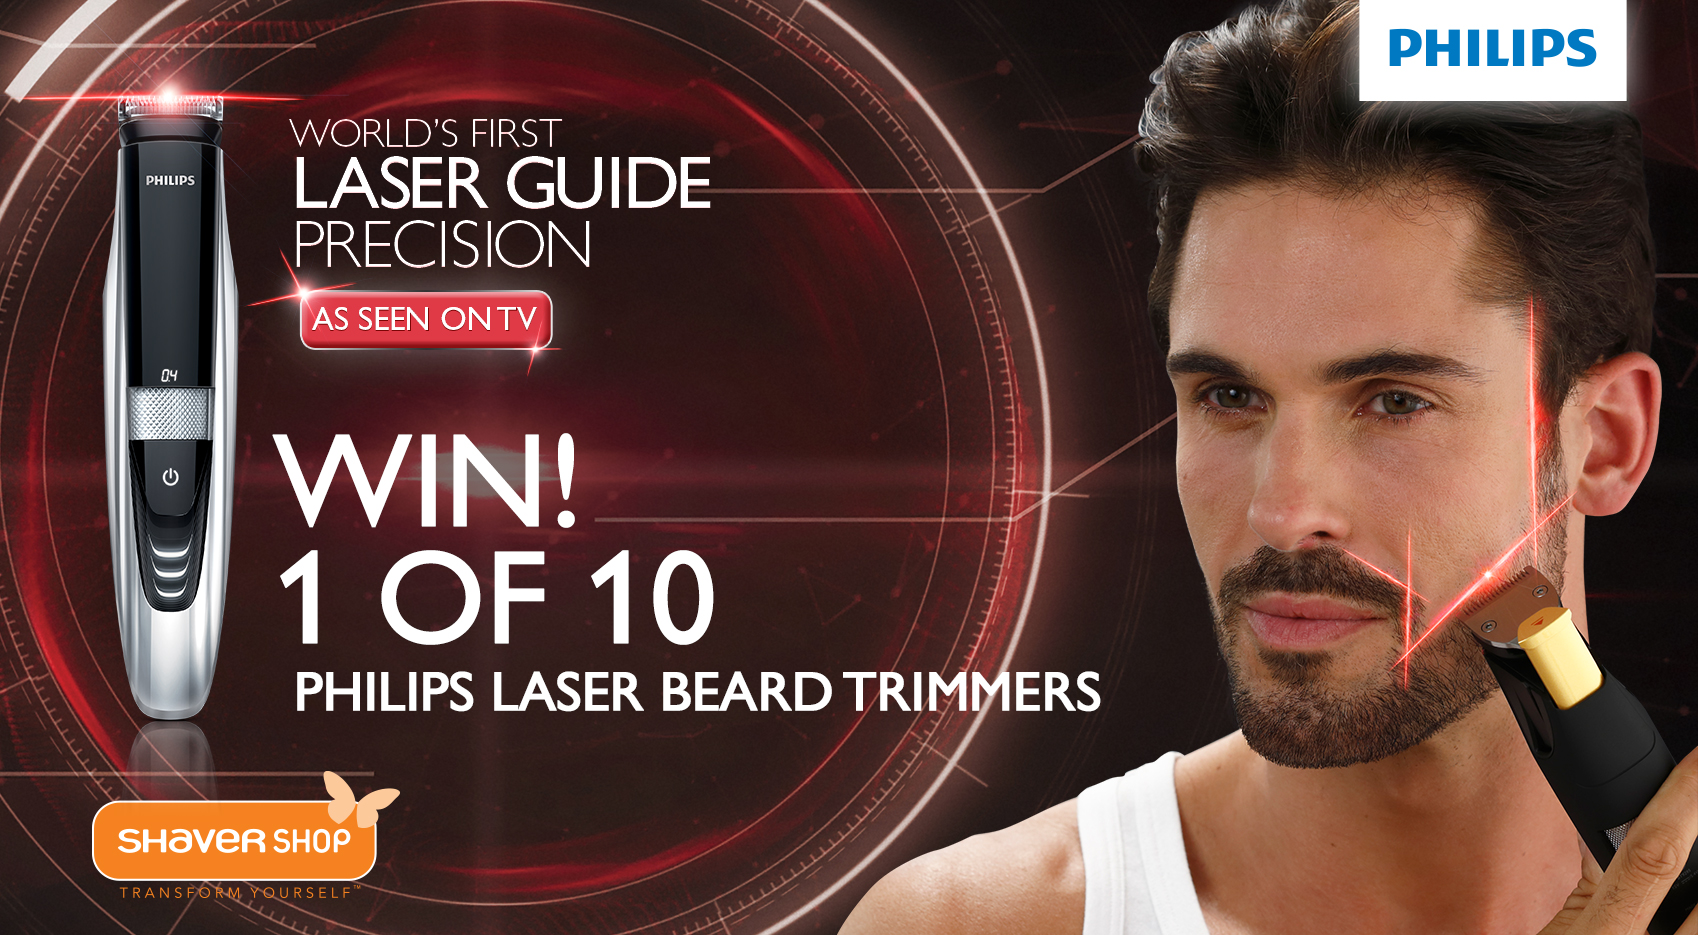 shaver shop win 1 of 10 philips laser beard trimmers australian competitions. Black Bedroom Furniture Sets. Home Design Ideas